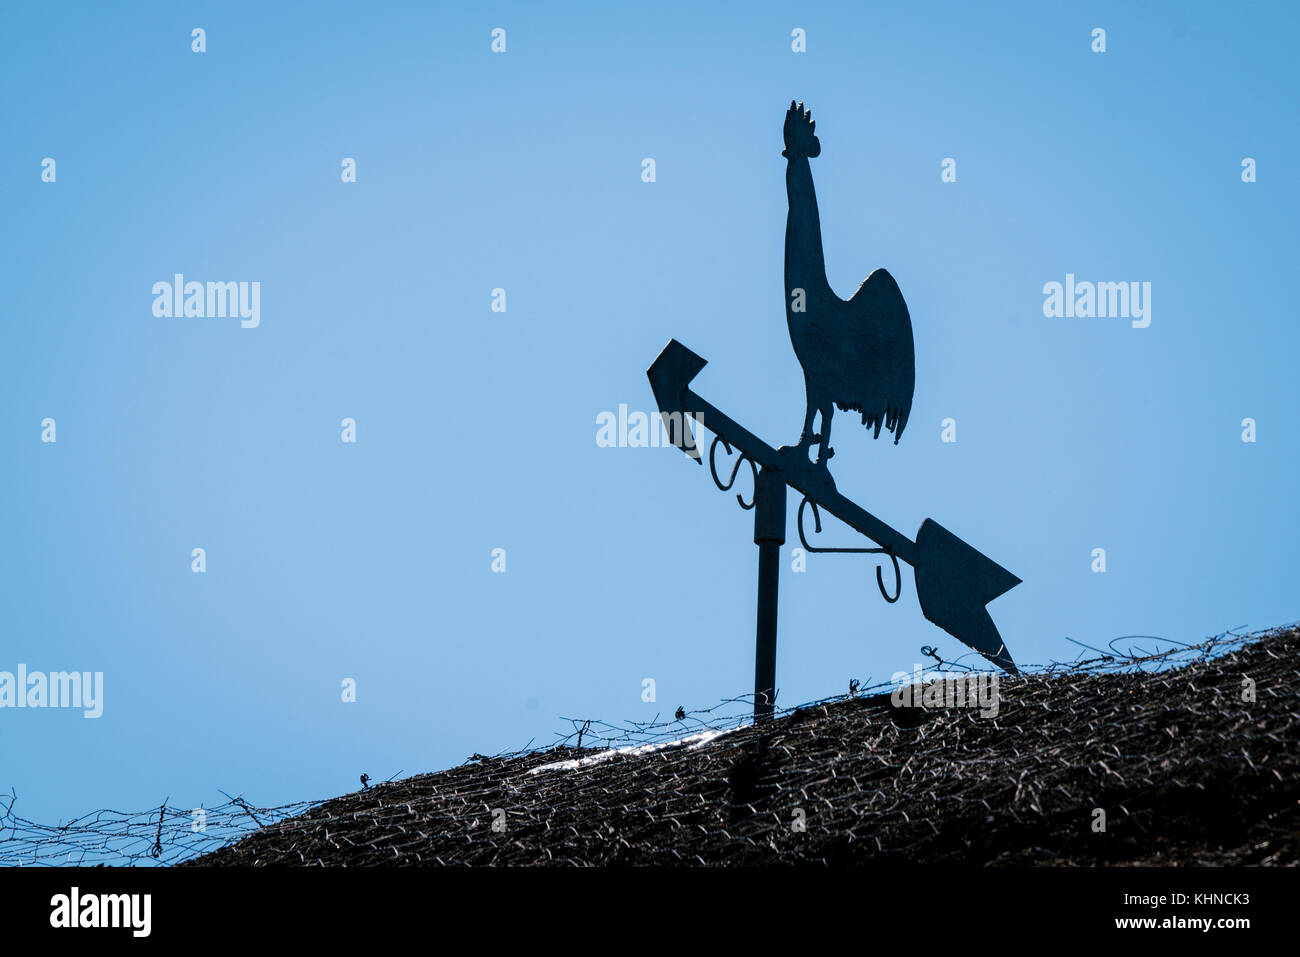 Weathervane silhouette of a rooster on a barnyard roof with blue sky in the background - Stock Image